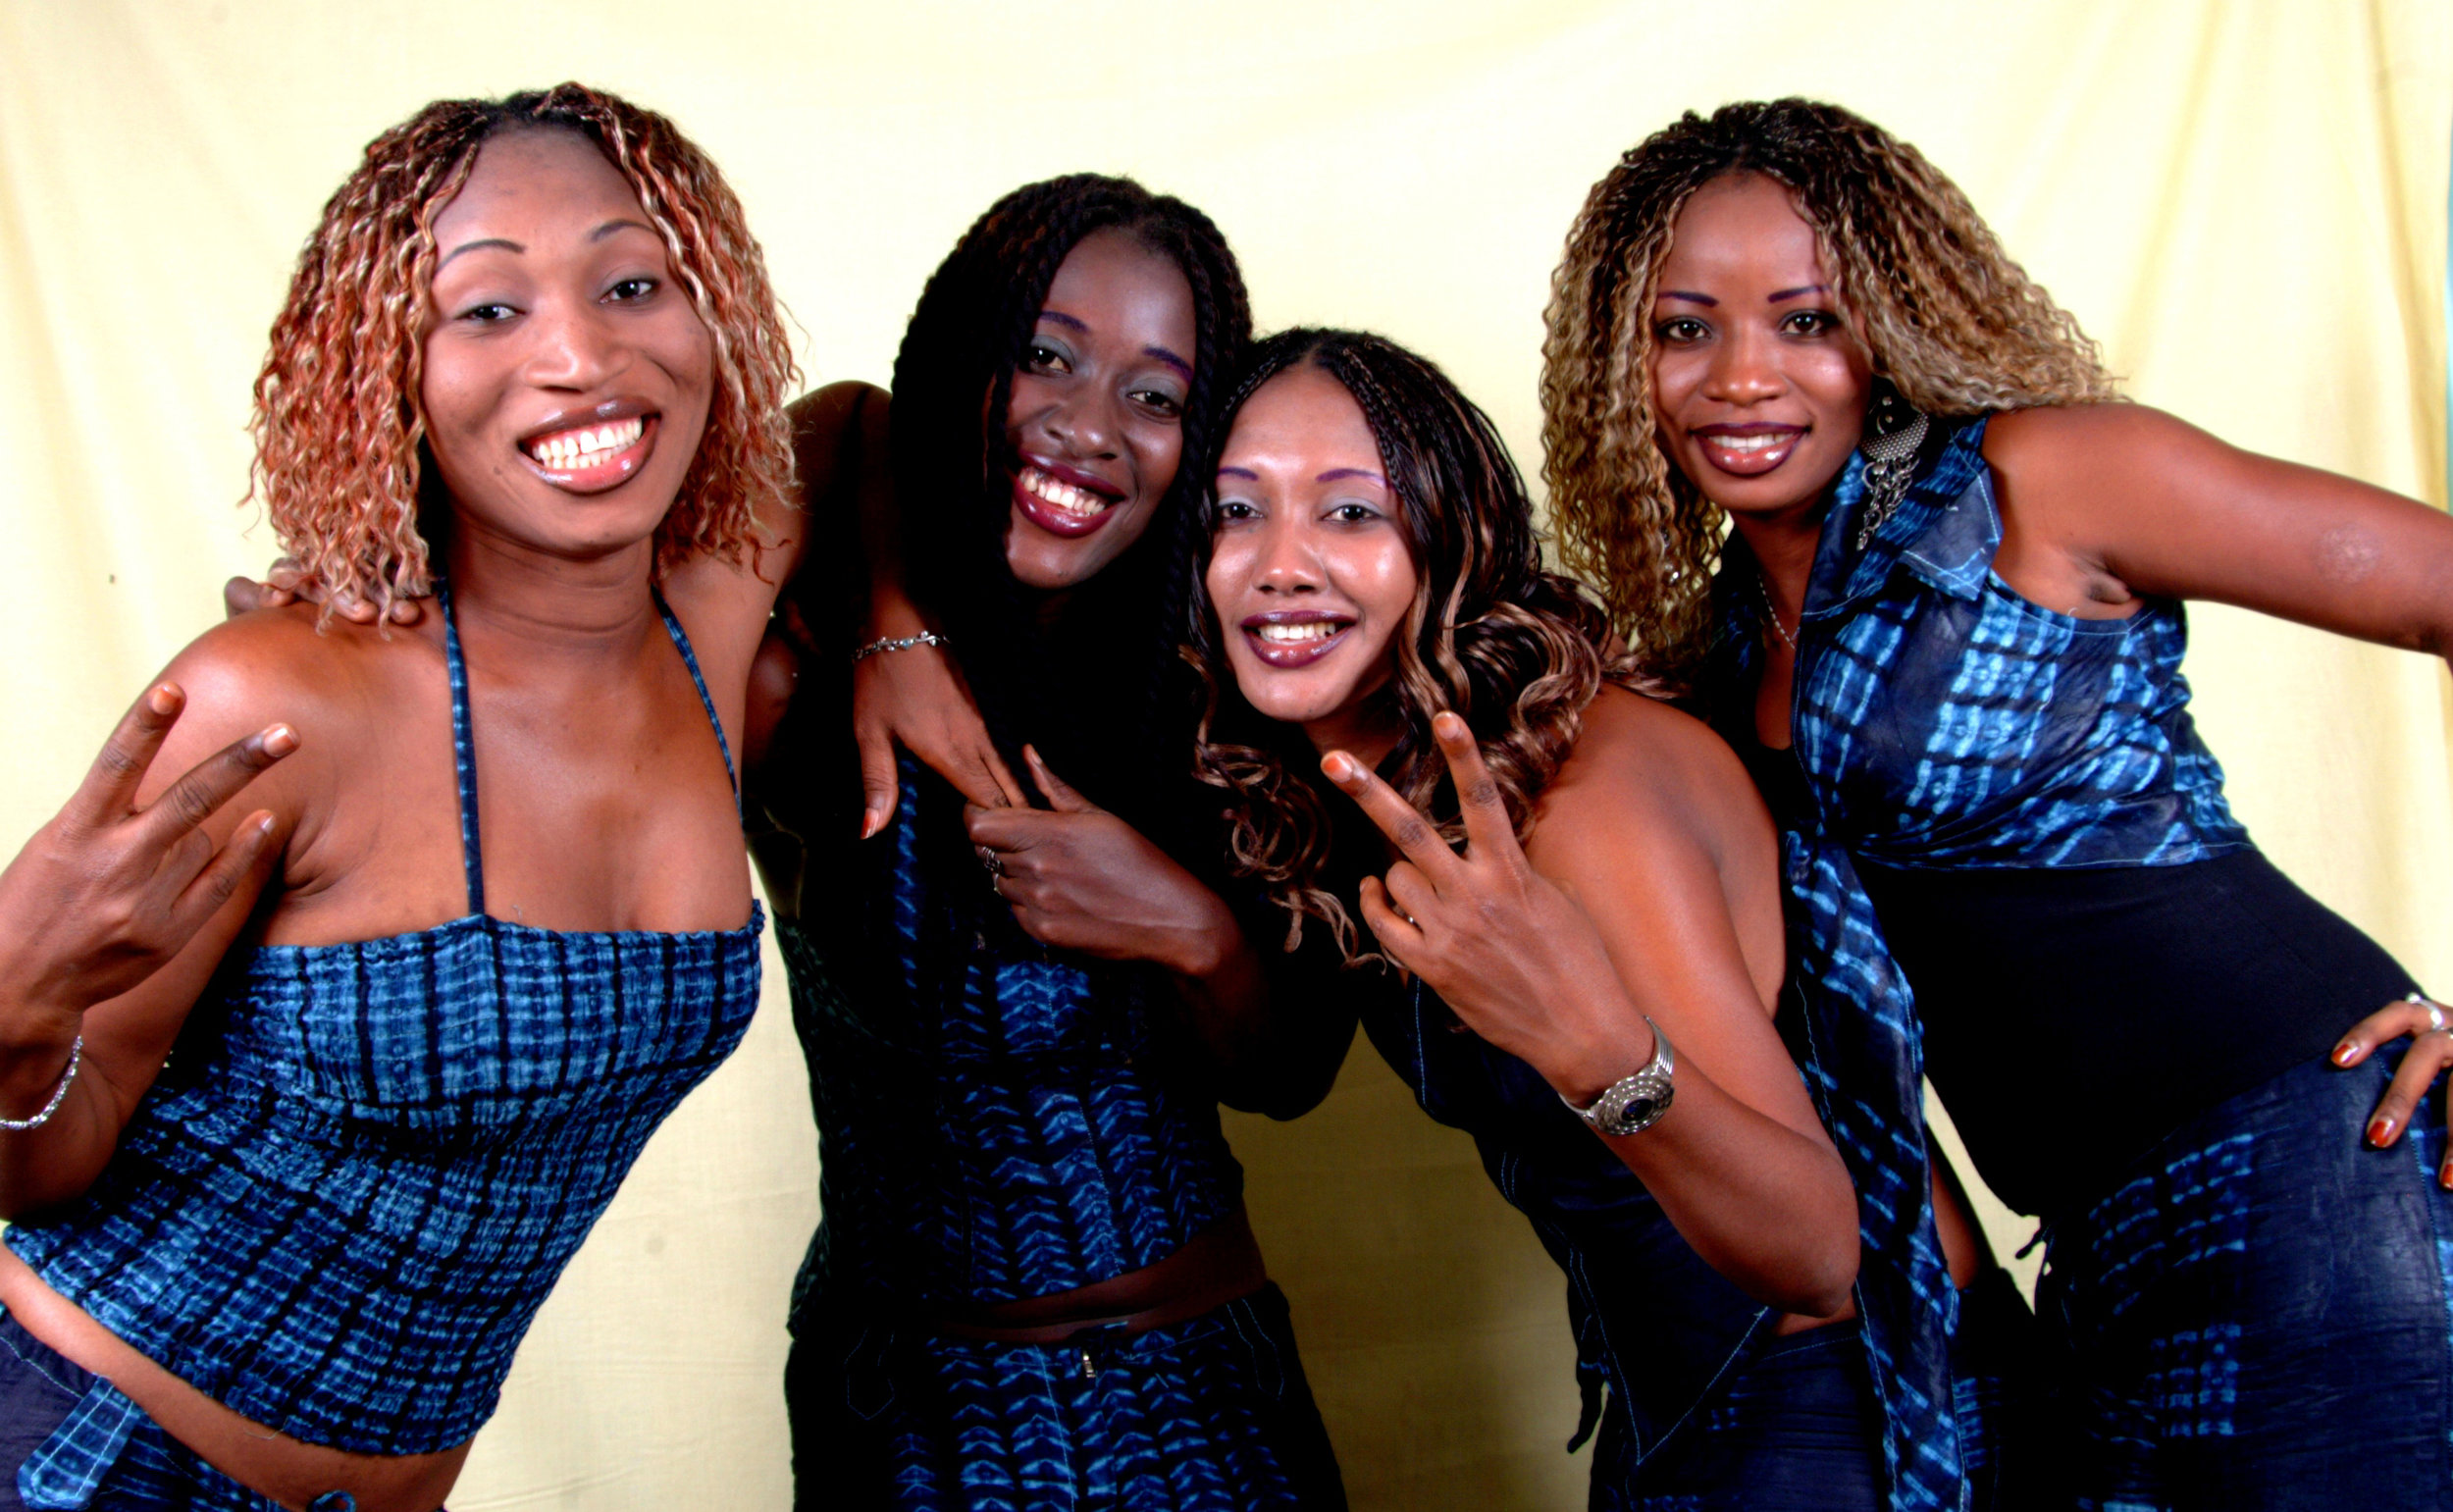 The Ideal Black Girls (L-R) Hadjy, Missbah, Dine, Natu. Formed in 1997, they were the first all female rap group in West Africa. Photo courtesy of the artist